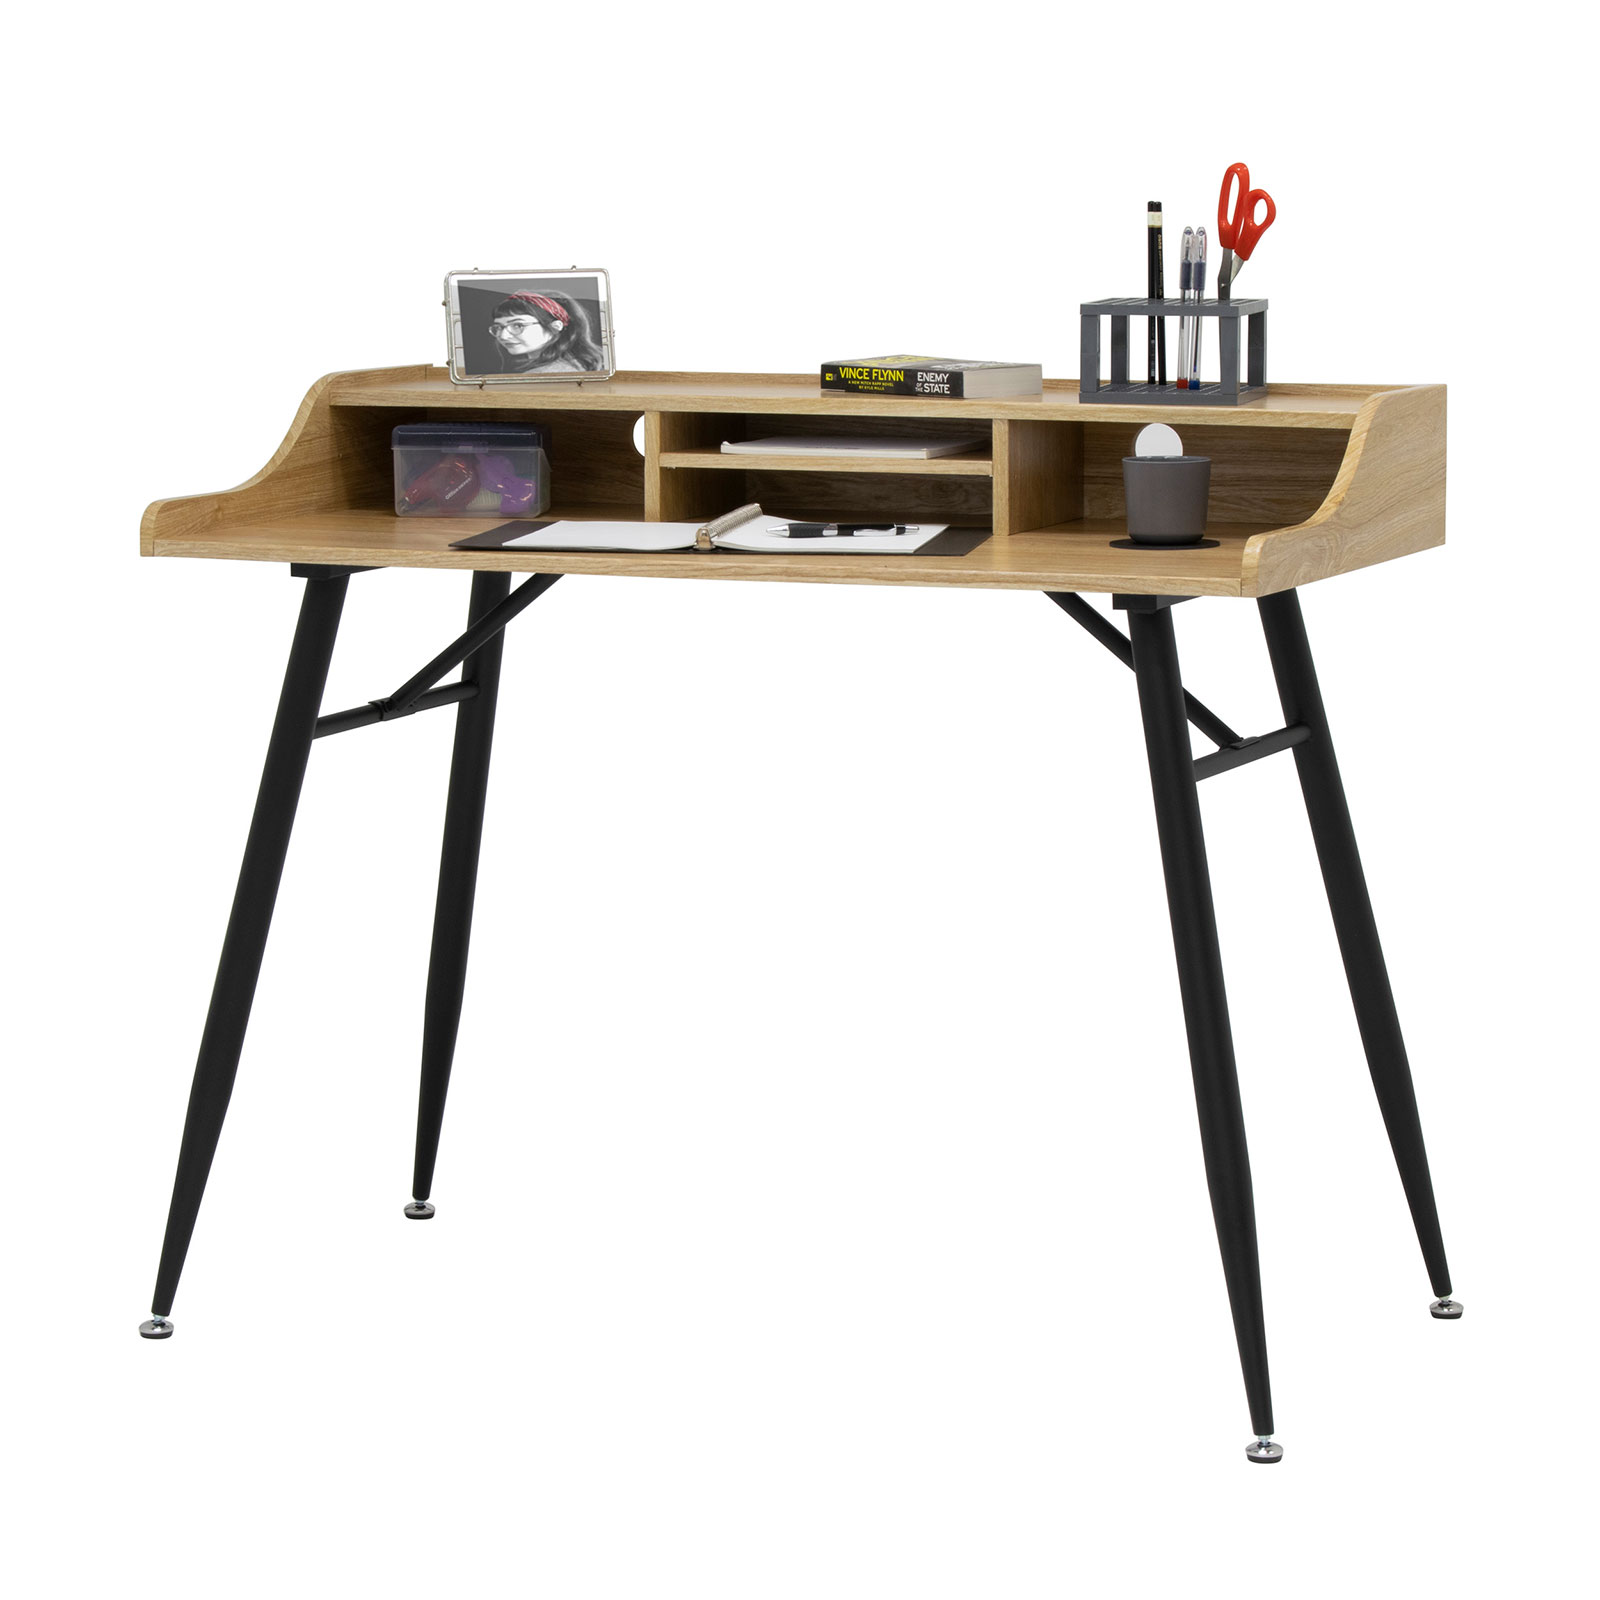 51260-Woodford-Writing-Desk-props1c